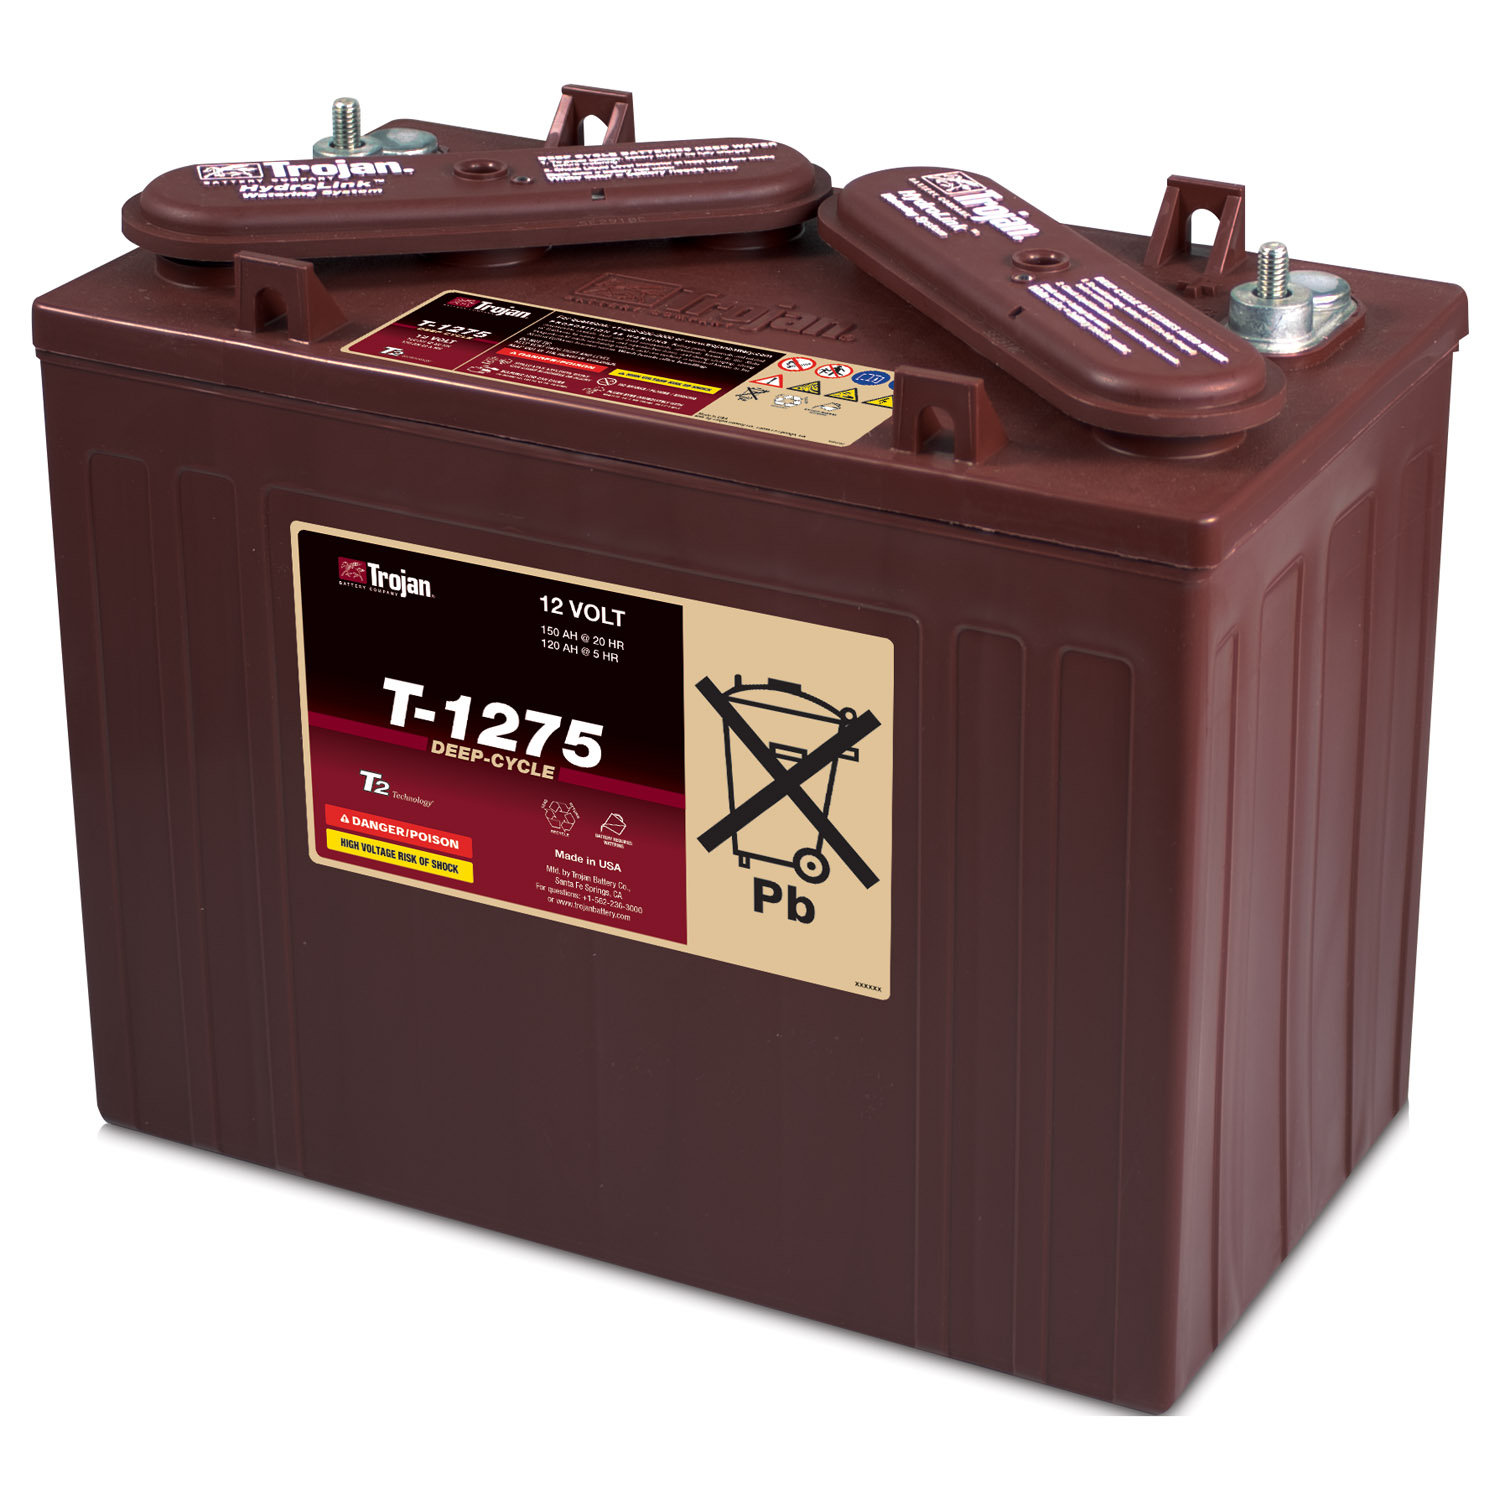 Trojan T 1275 Wiring Diagram Libraries Club Car 12 Volt Battery 24 Batterie Golf 5 V Gt Tdi Startvorgang Mit Voller Batteriet1275 Cart